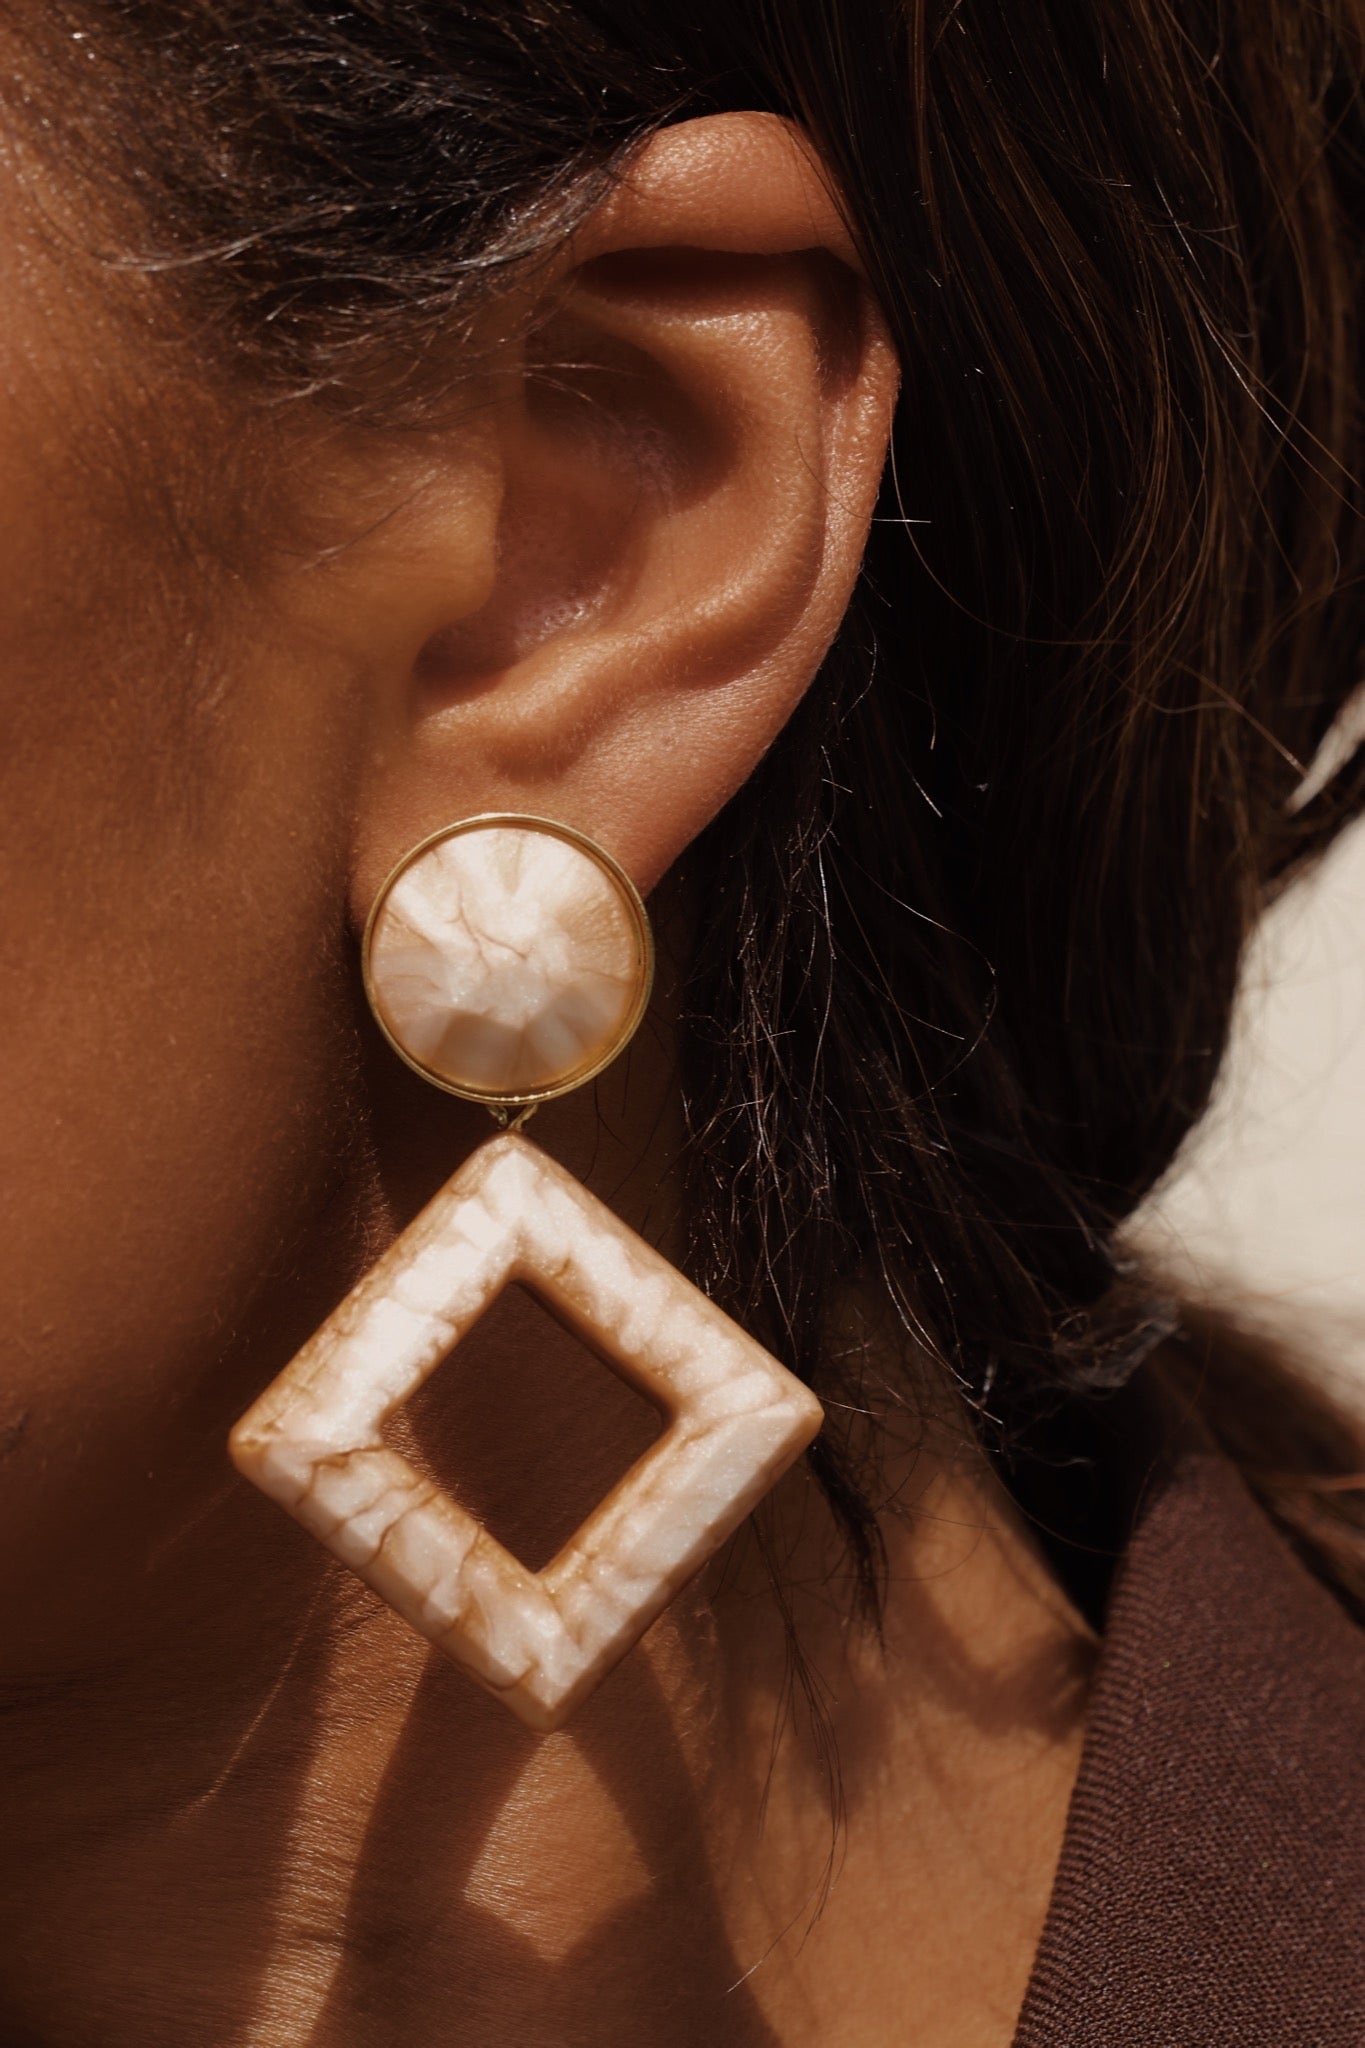 Jacky nude marble earrings